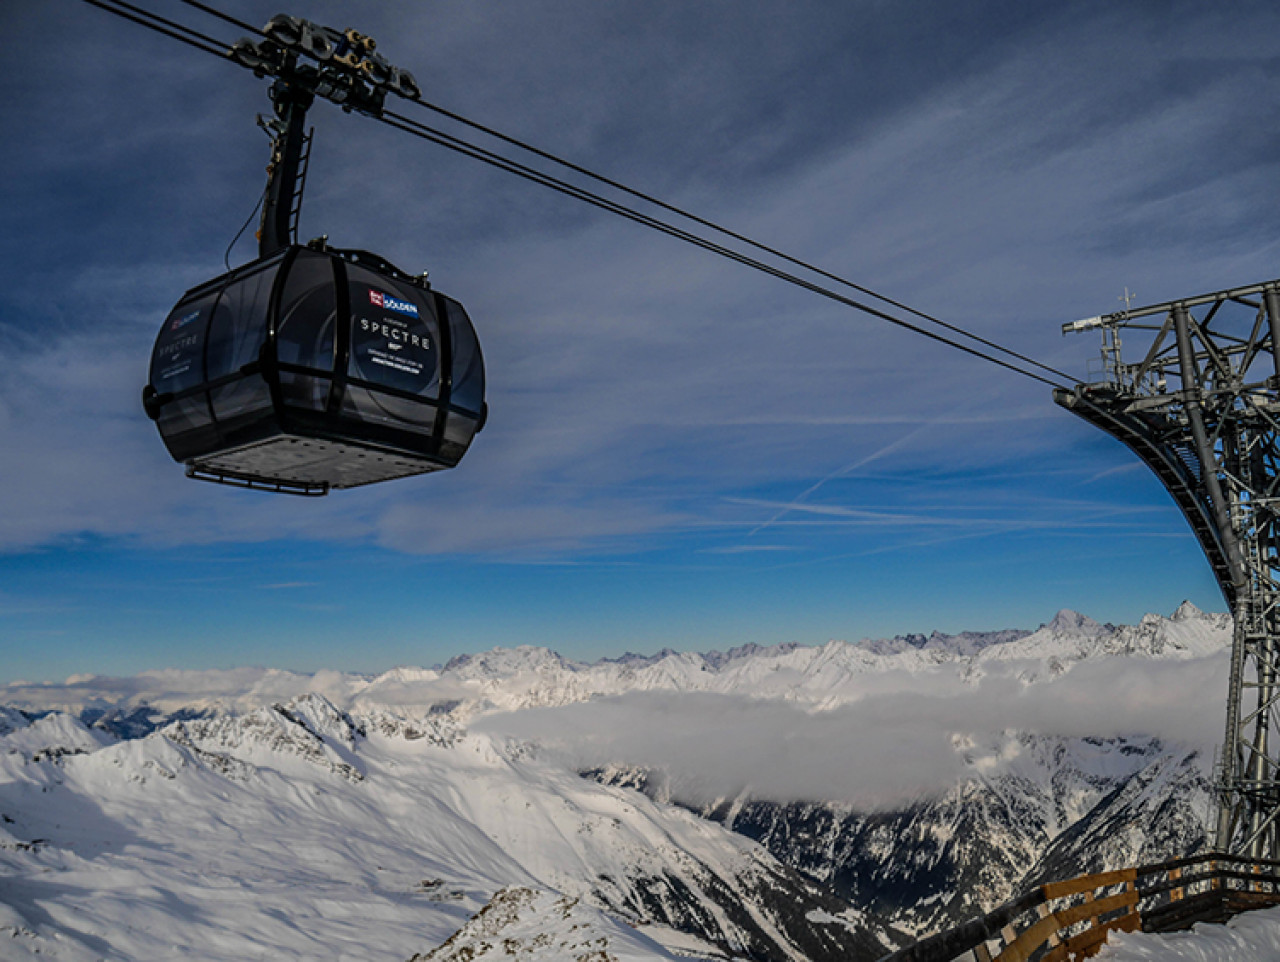 The Gaislachkogl cable car was opened in 2010 and is one of the highest of its kind.